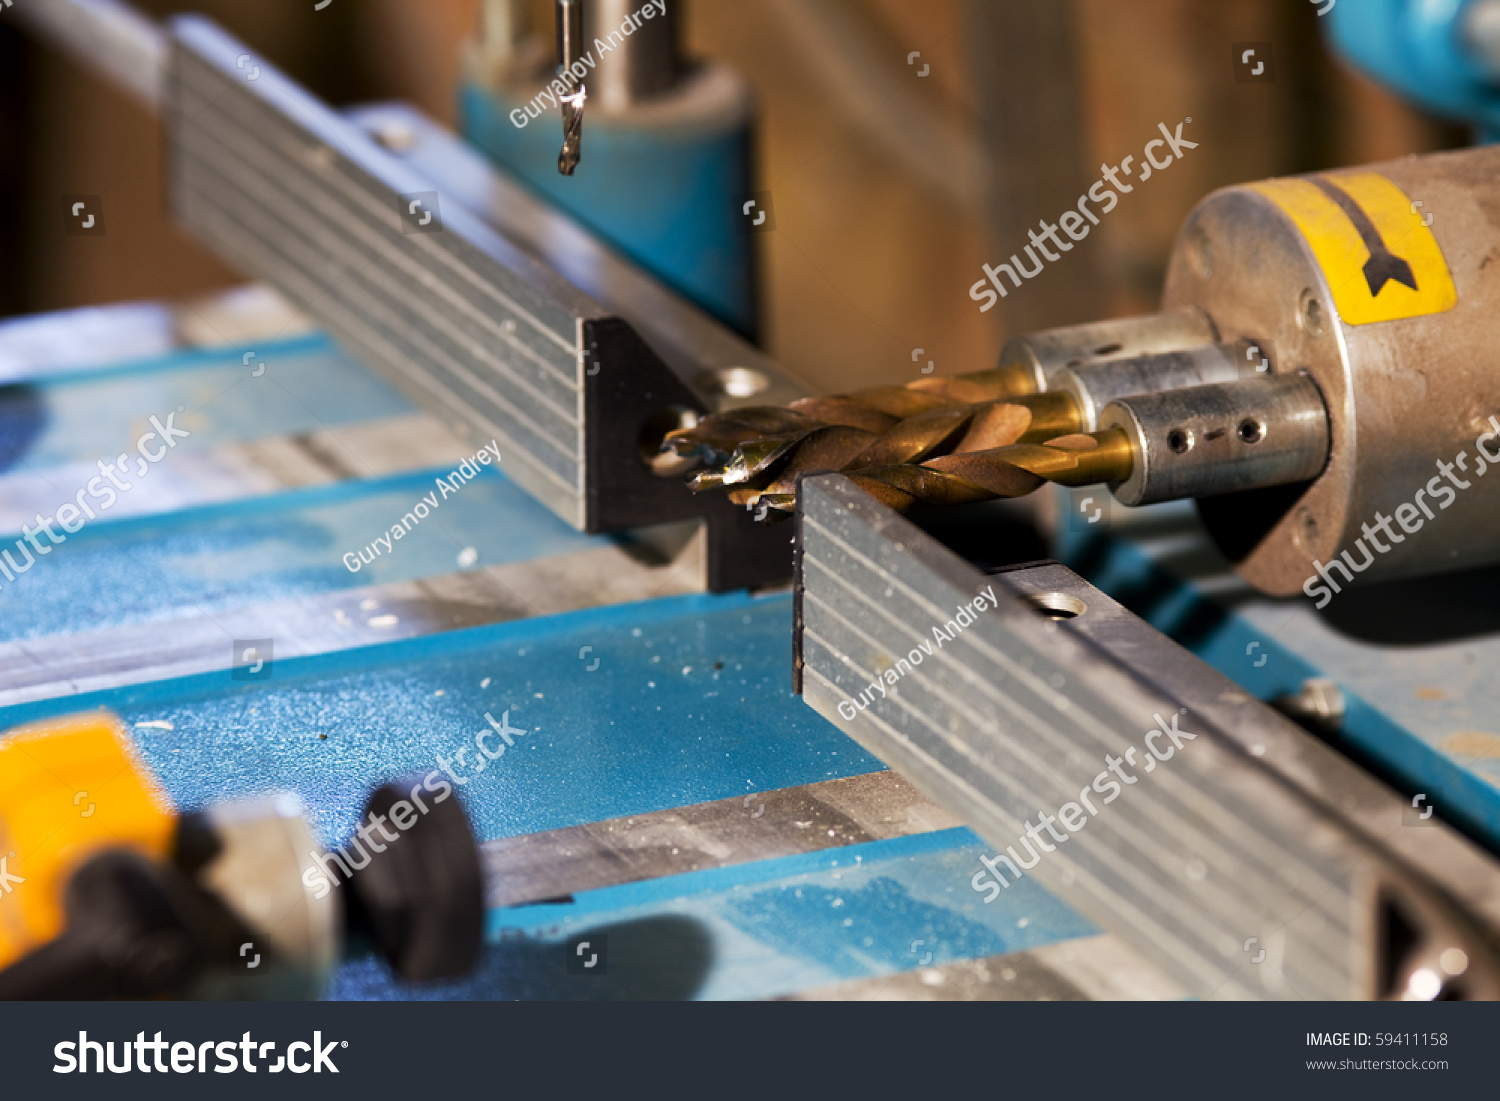 Drill Hole Plastic Window Manufacture Stock Photo 59411158 ...